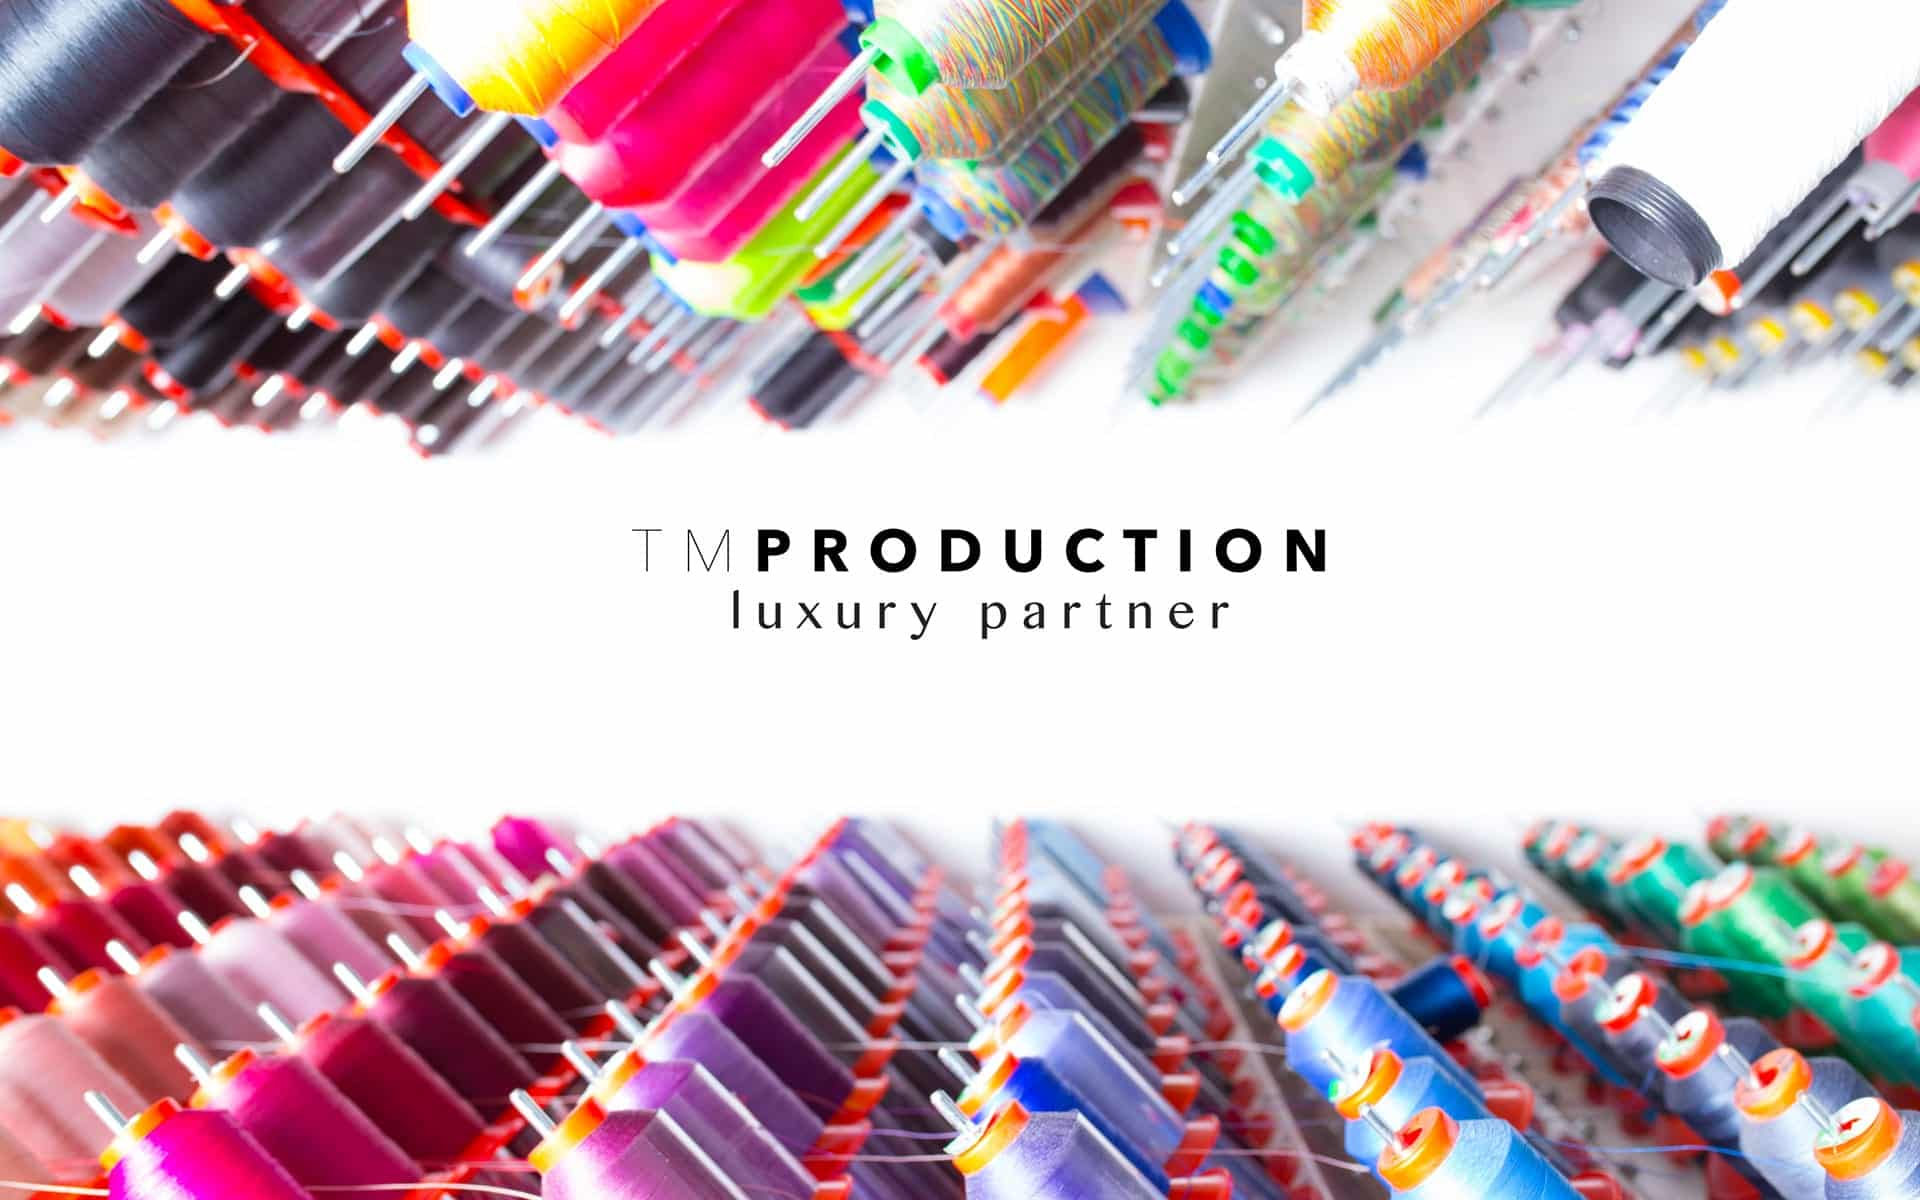 slide 1 production